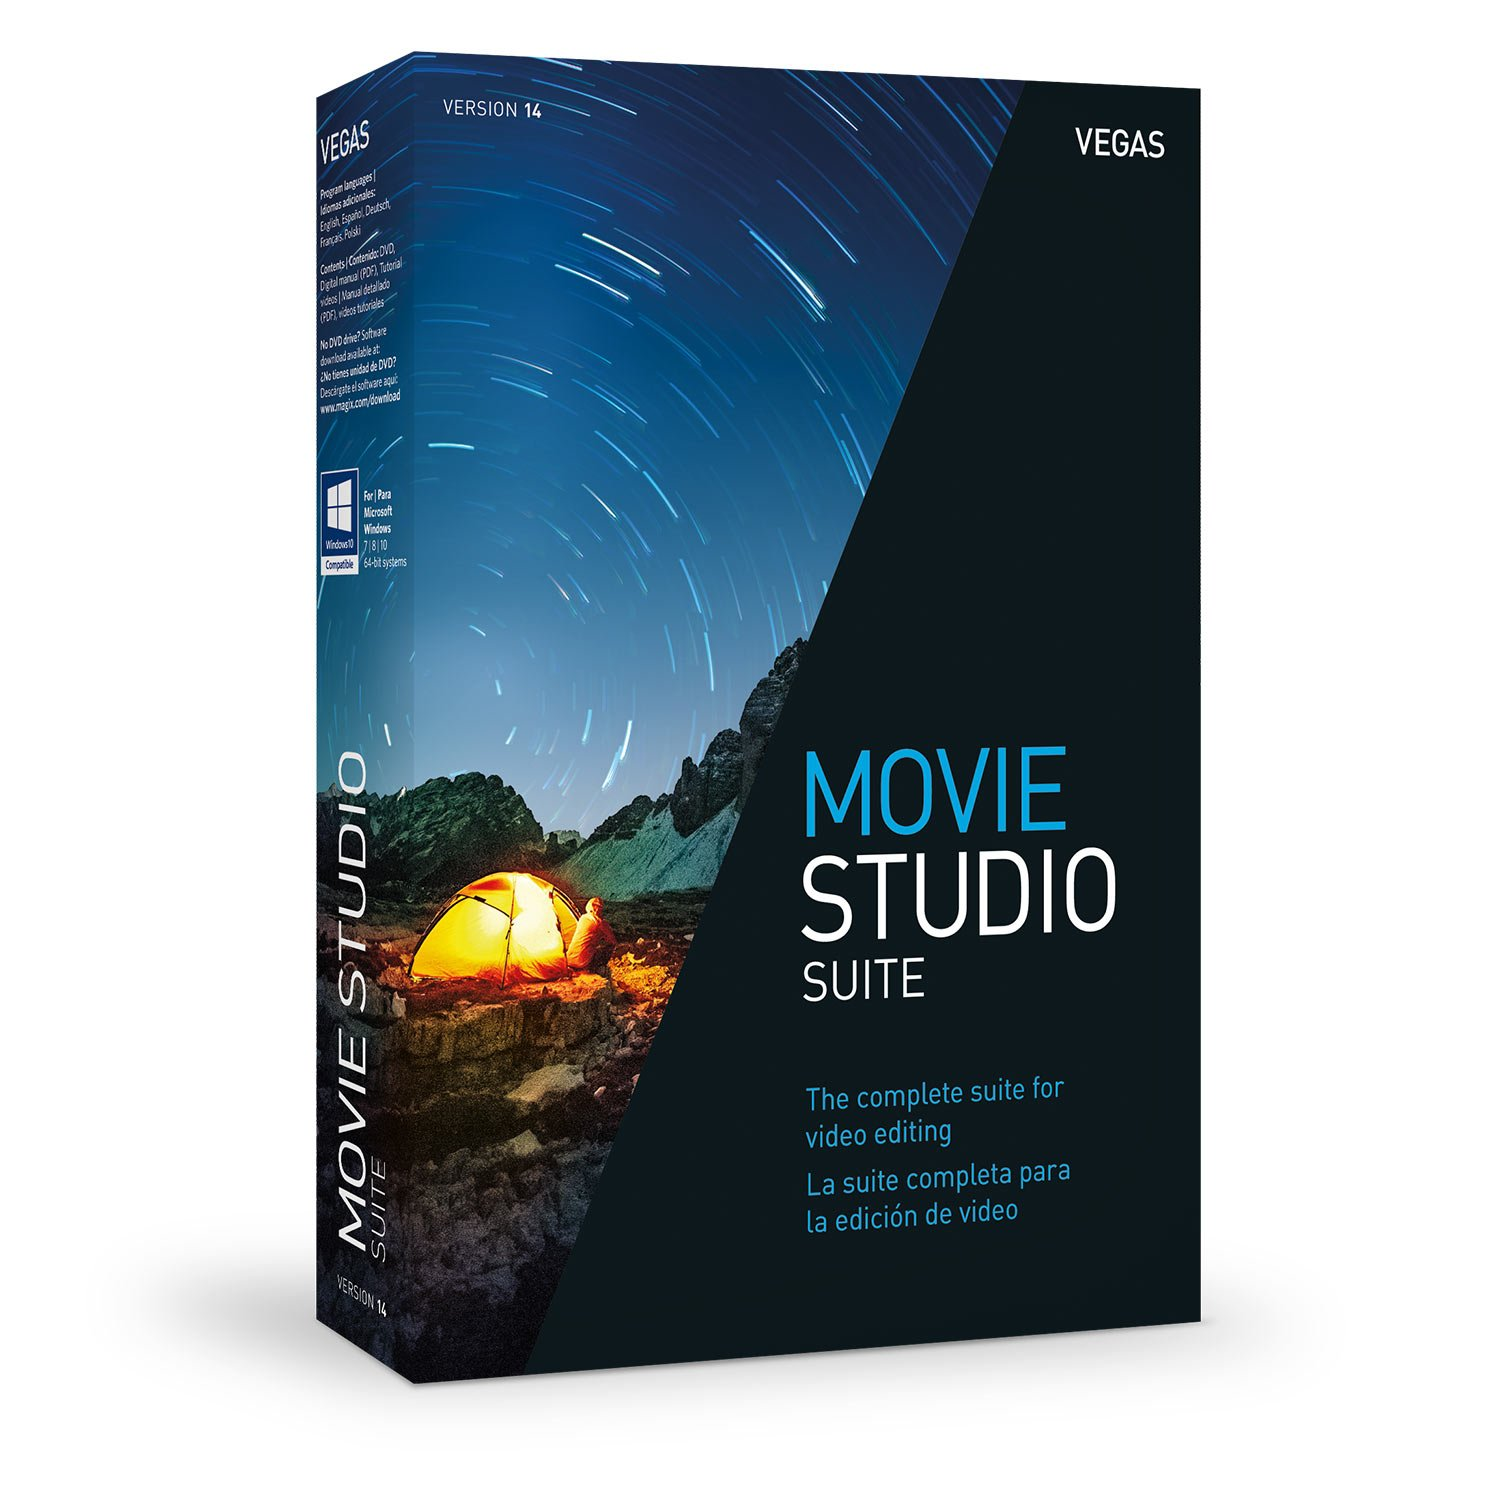 VEGAS Movie Studio 14 Suite - The complete suite for video editing by Vegas